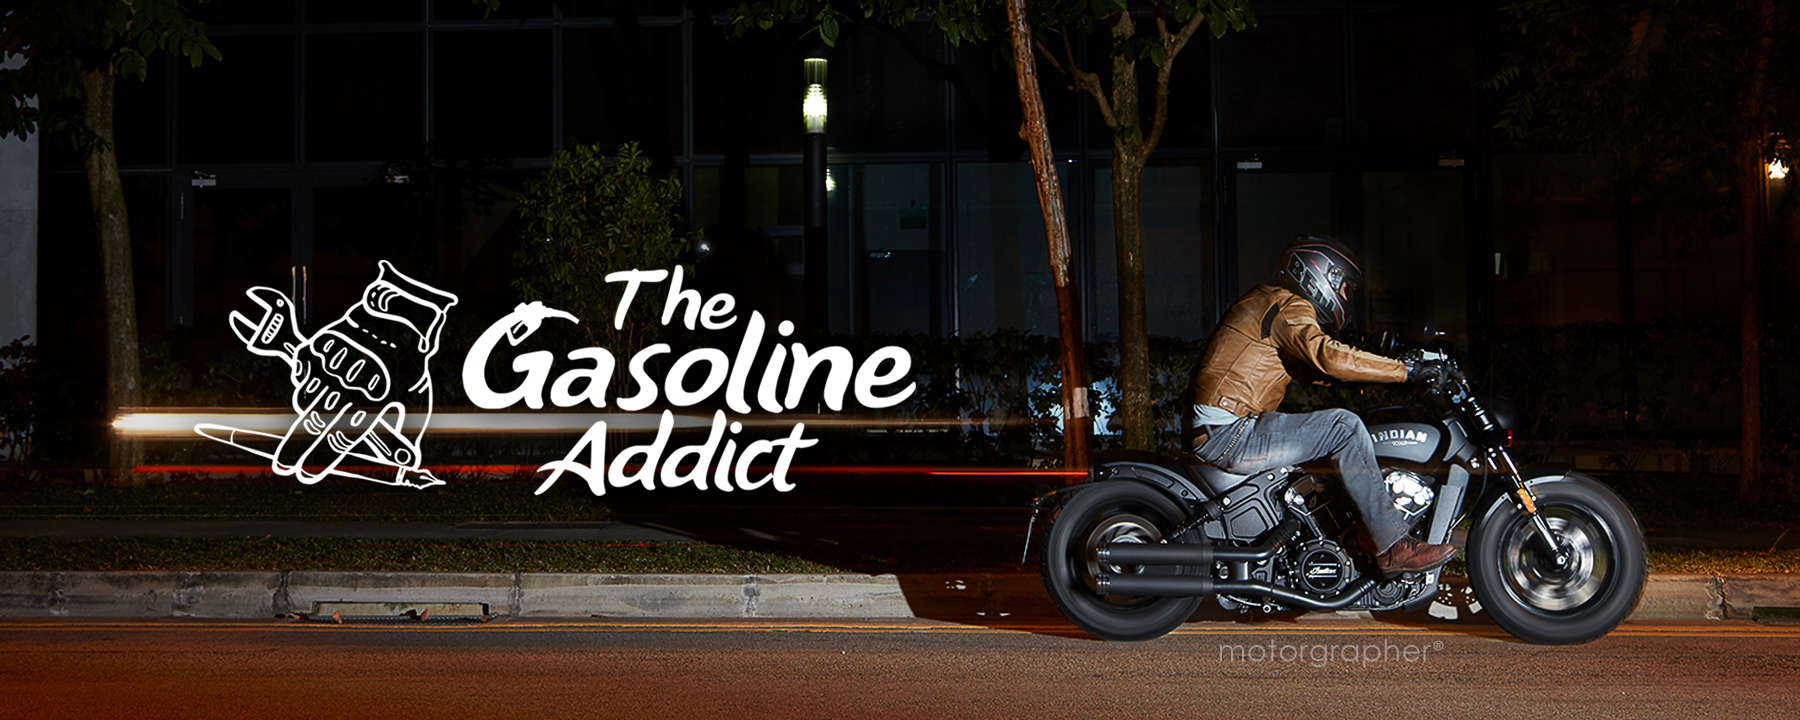 The Gasoline Addict